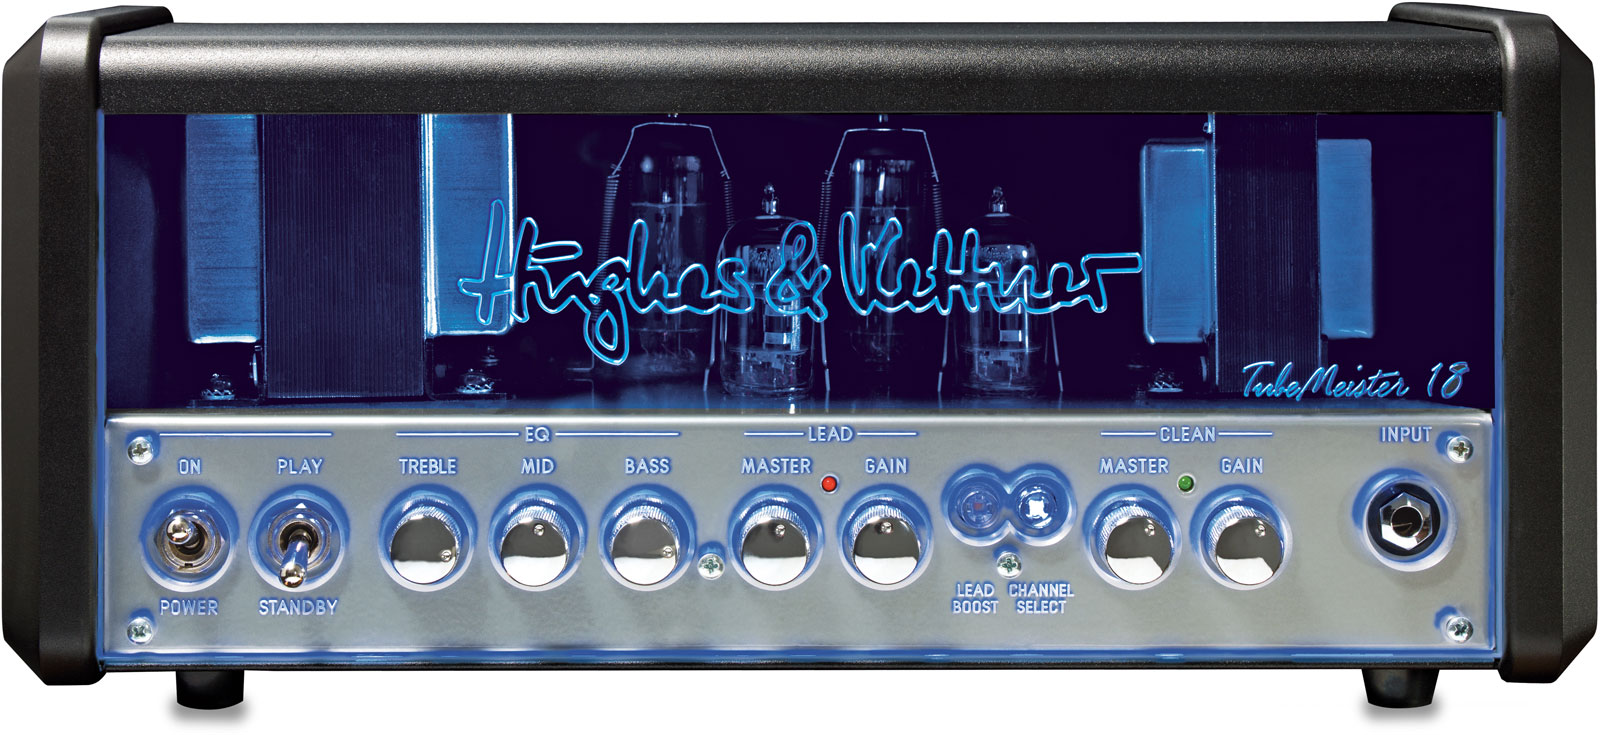 hughes kettner tubemeister 18 head image 547545 audiofanzine. Black Bedroom Furniture Sets. Home Design Ideas